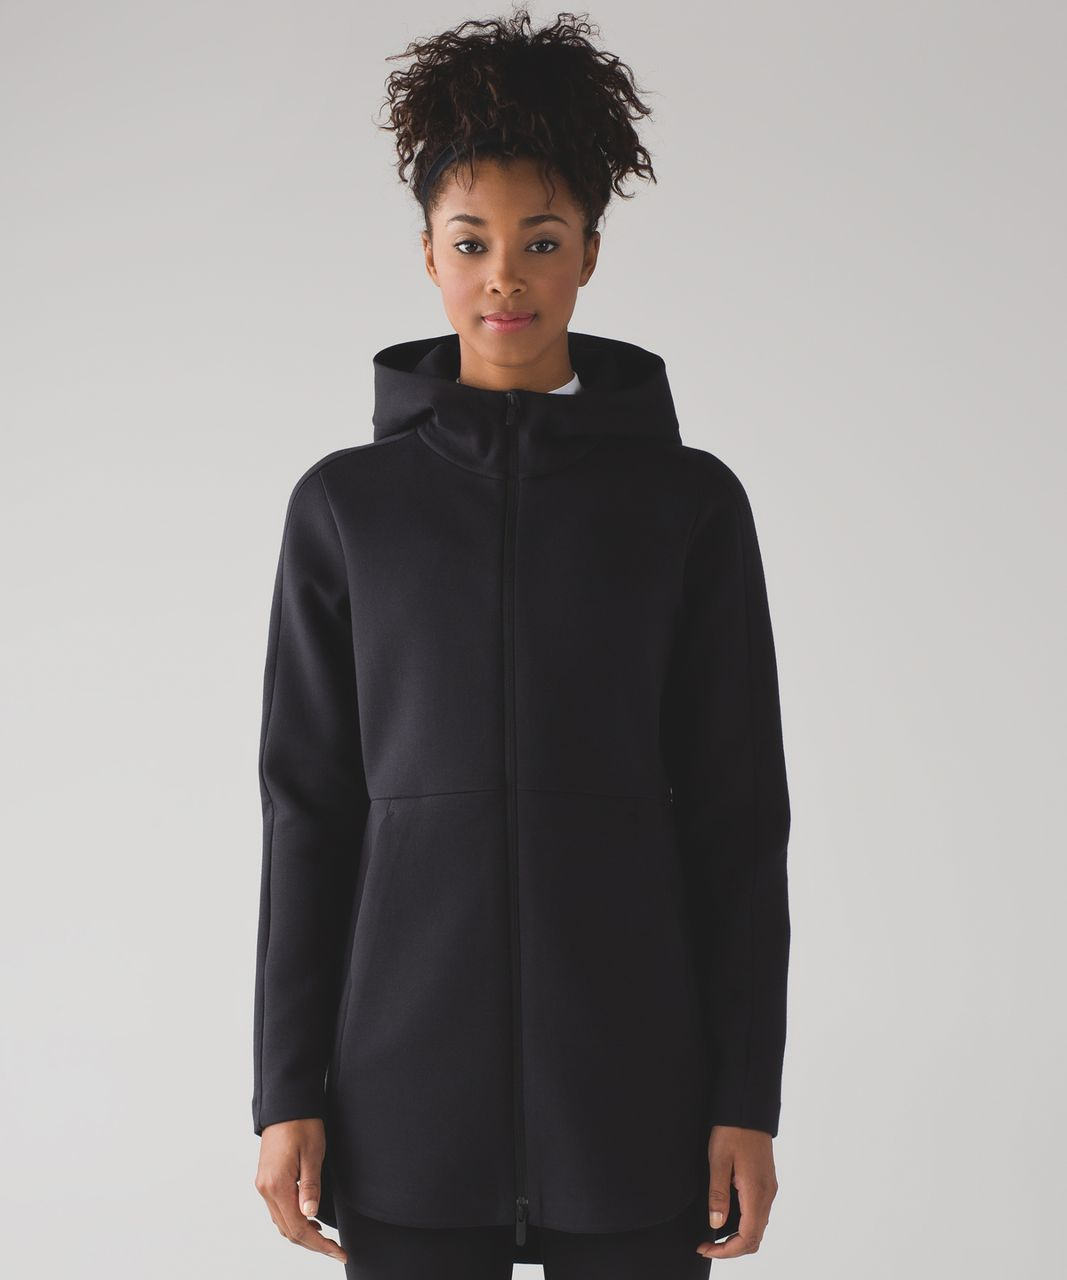 Lululemon Going Places Hooded Jacket Black Lulu Fanatics